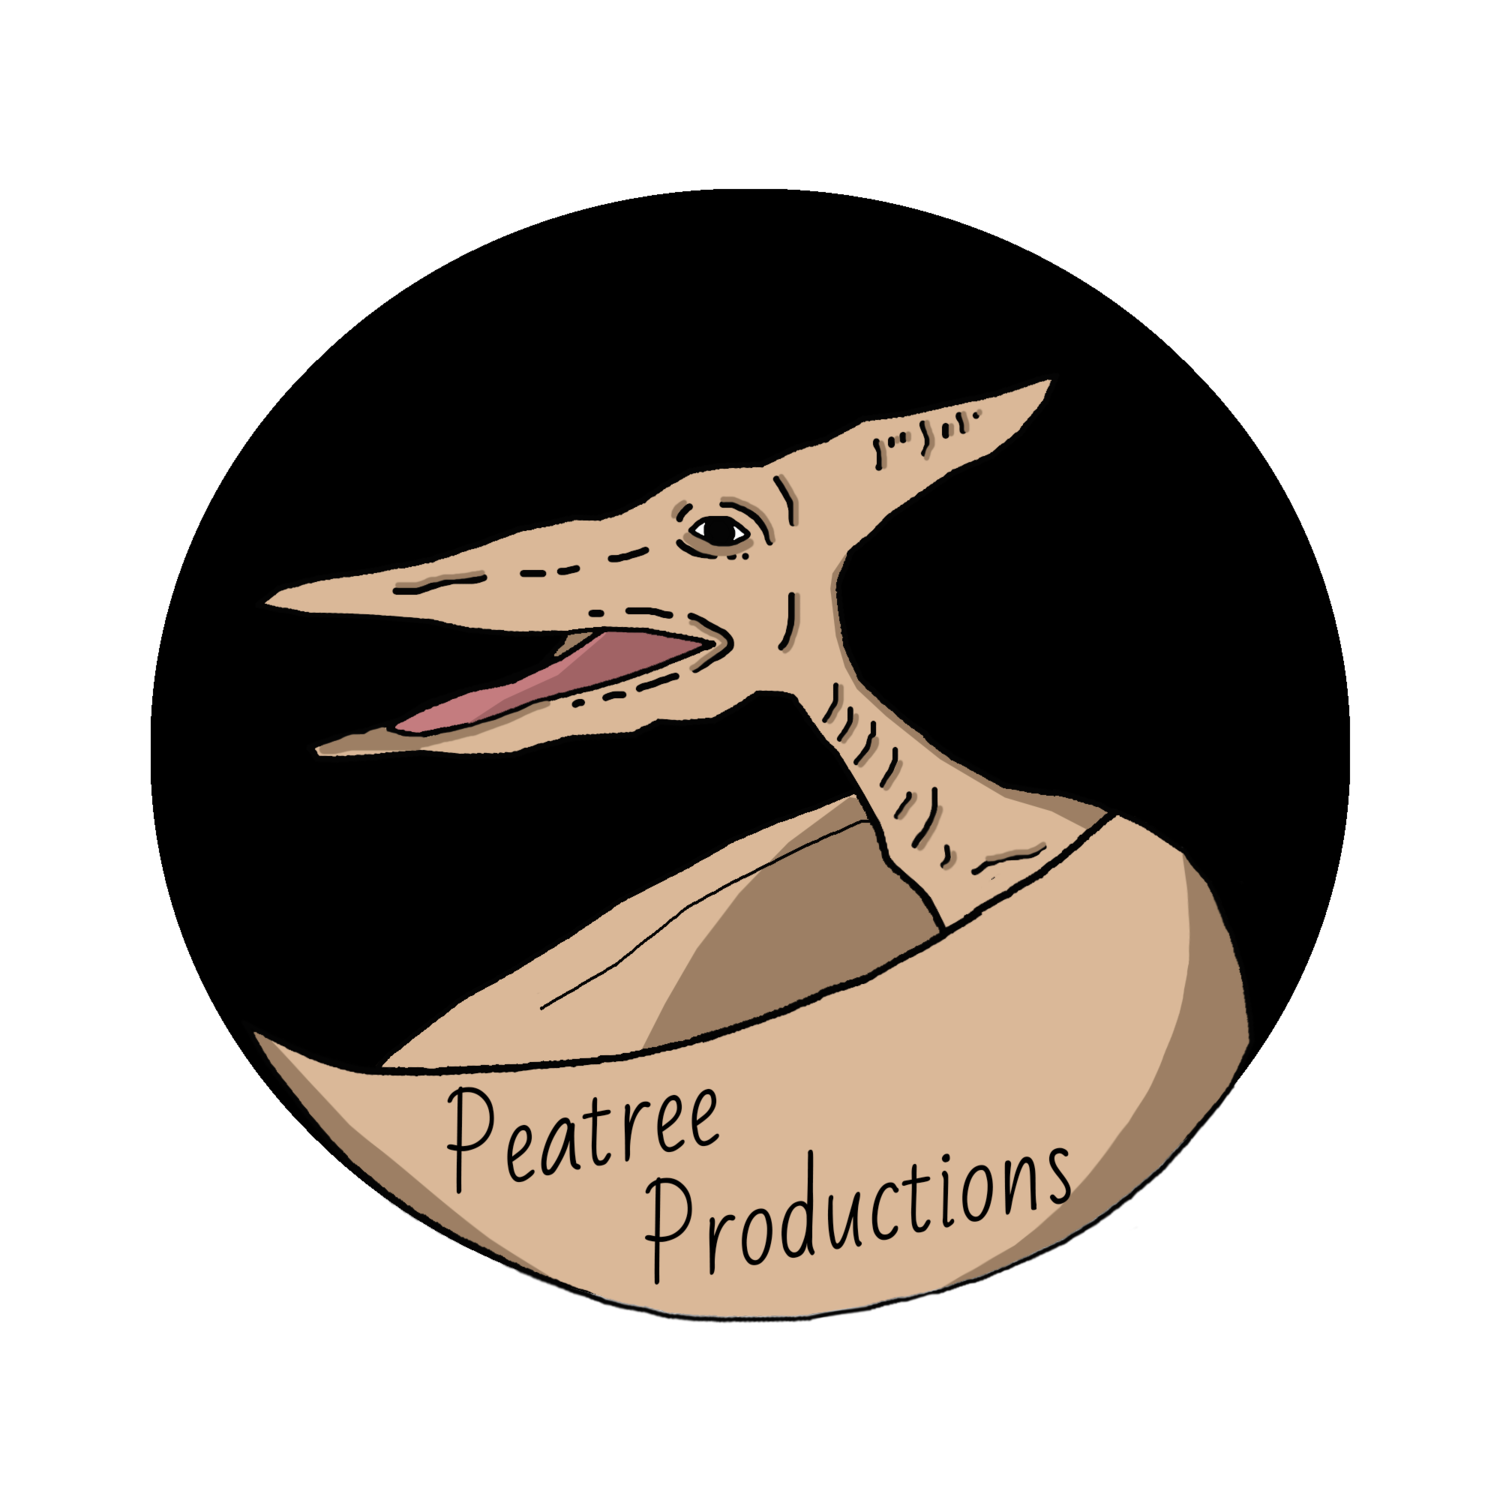 Peatree Productions LTD